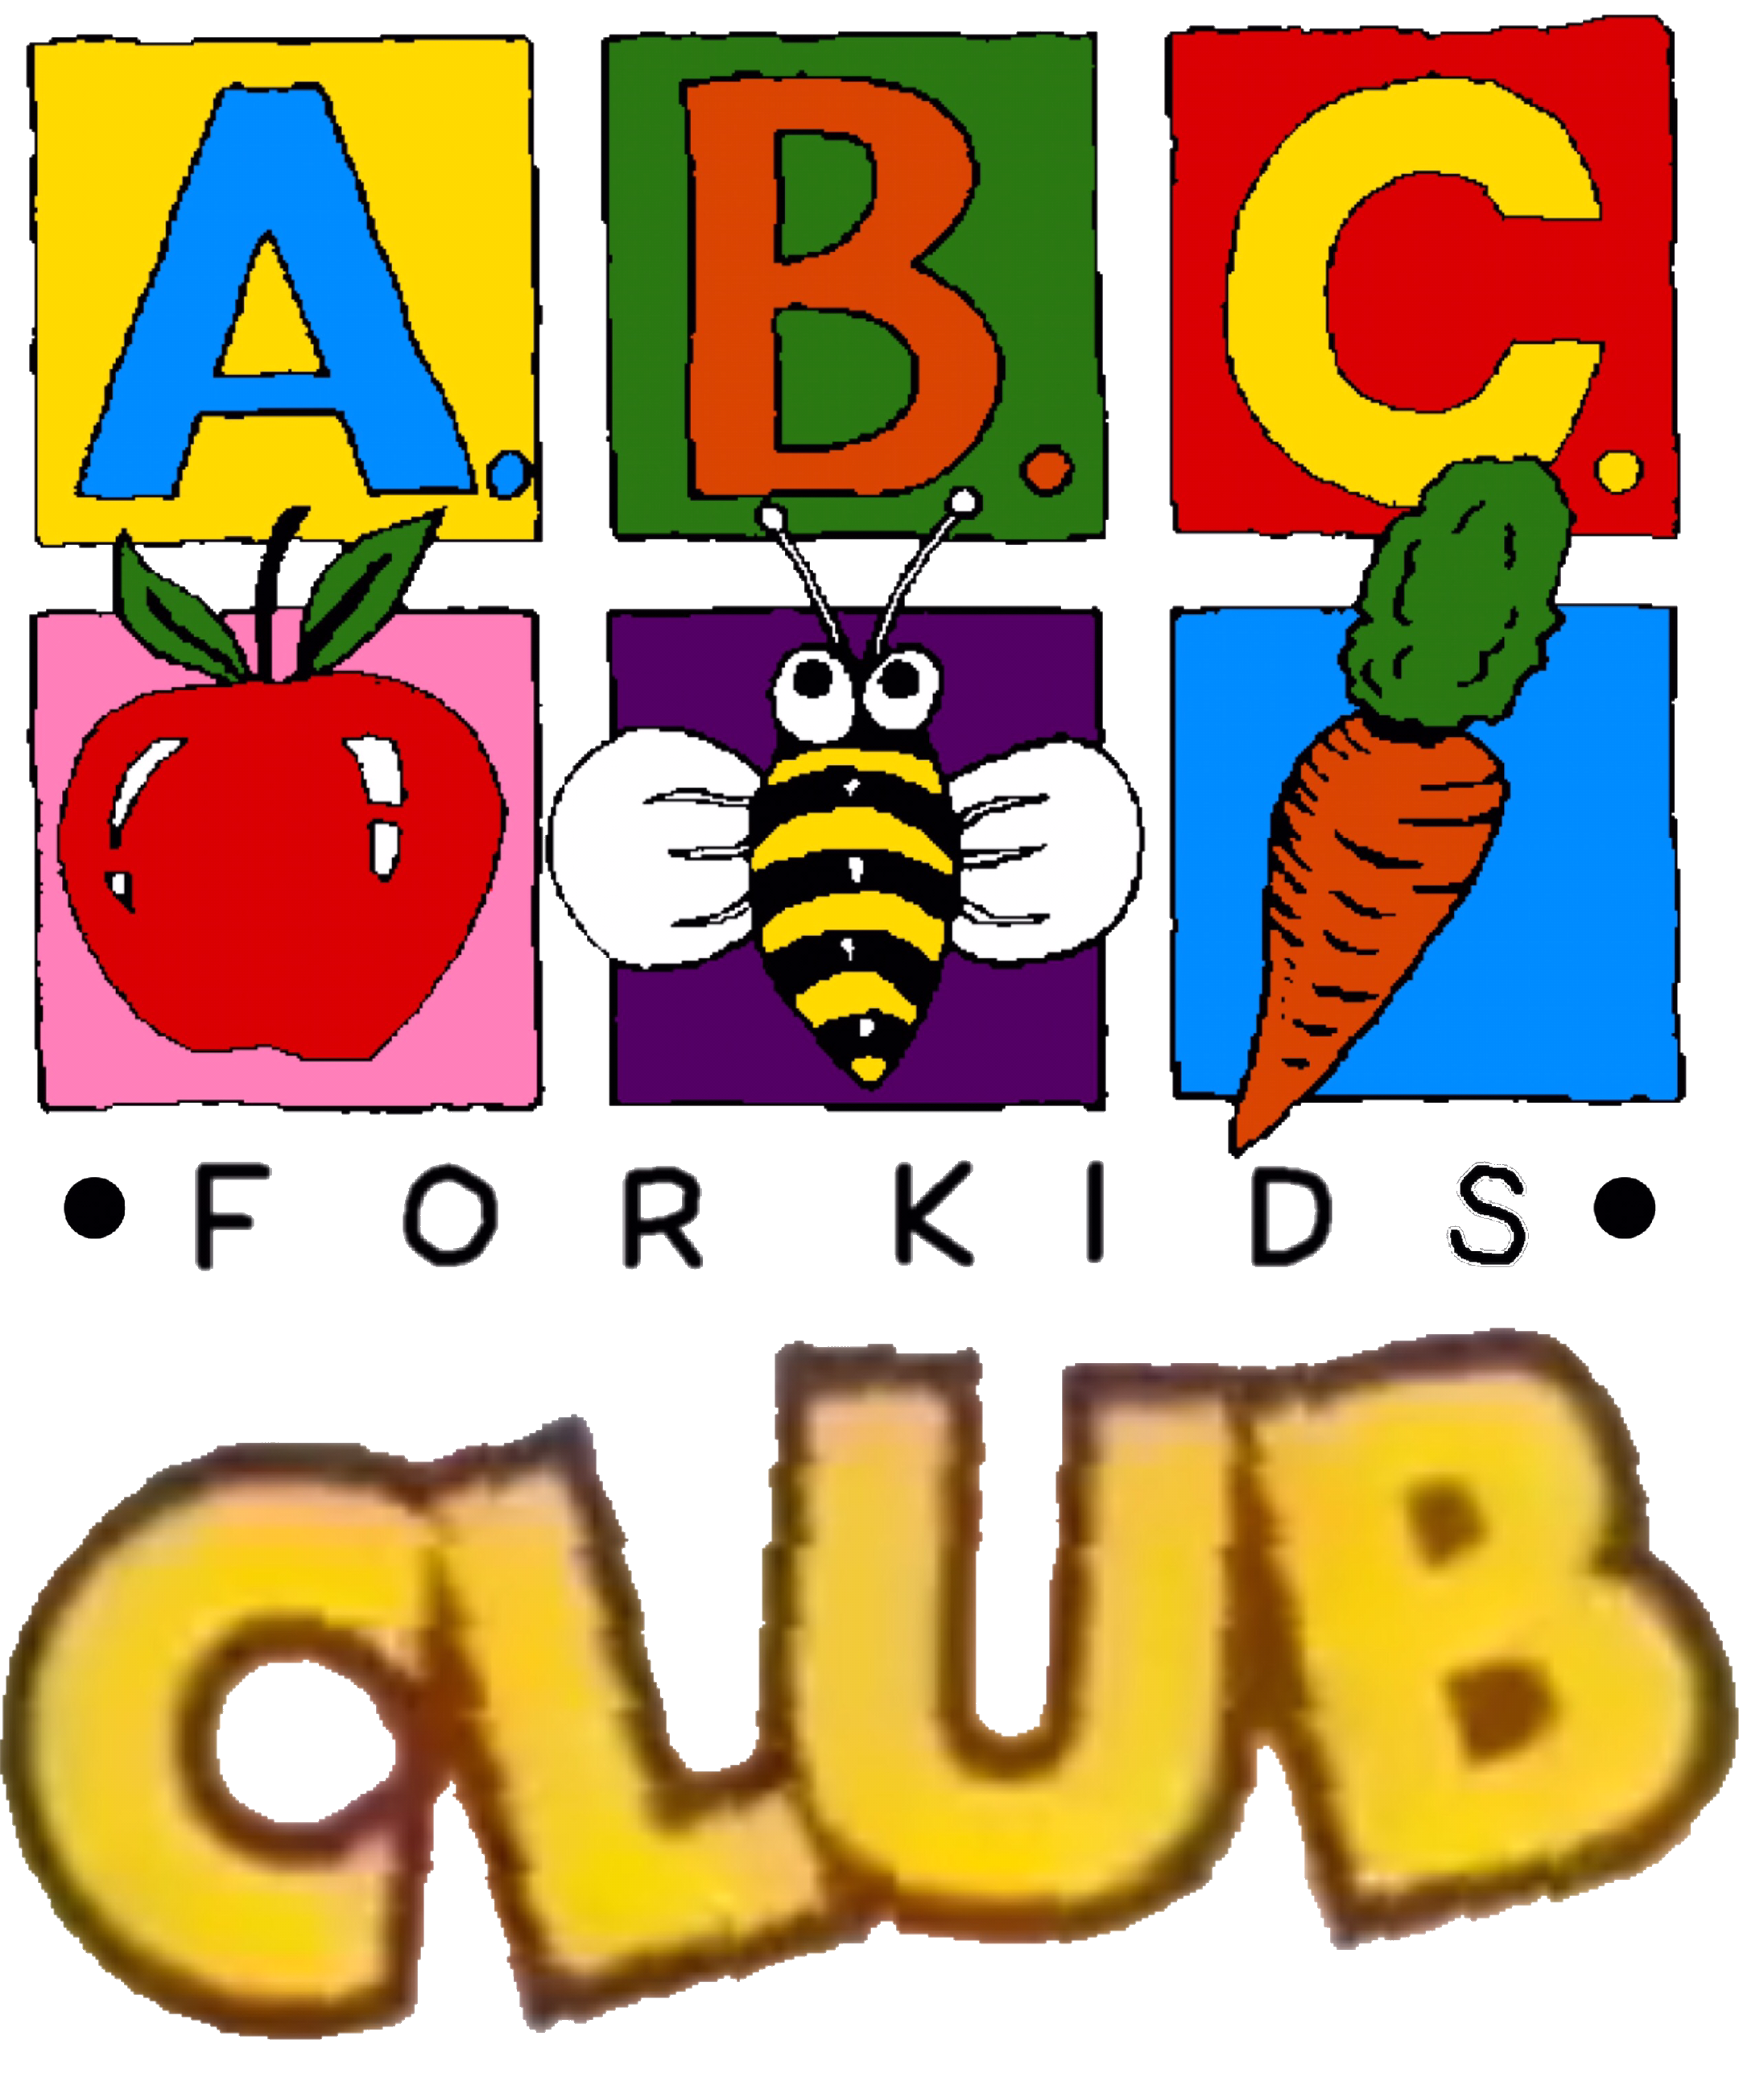 ABC for Kids Club